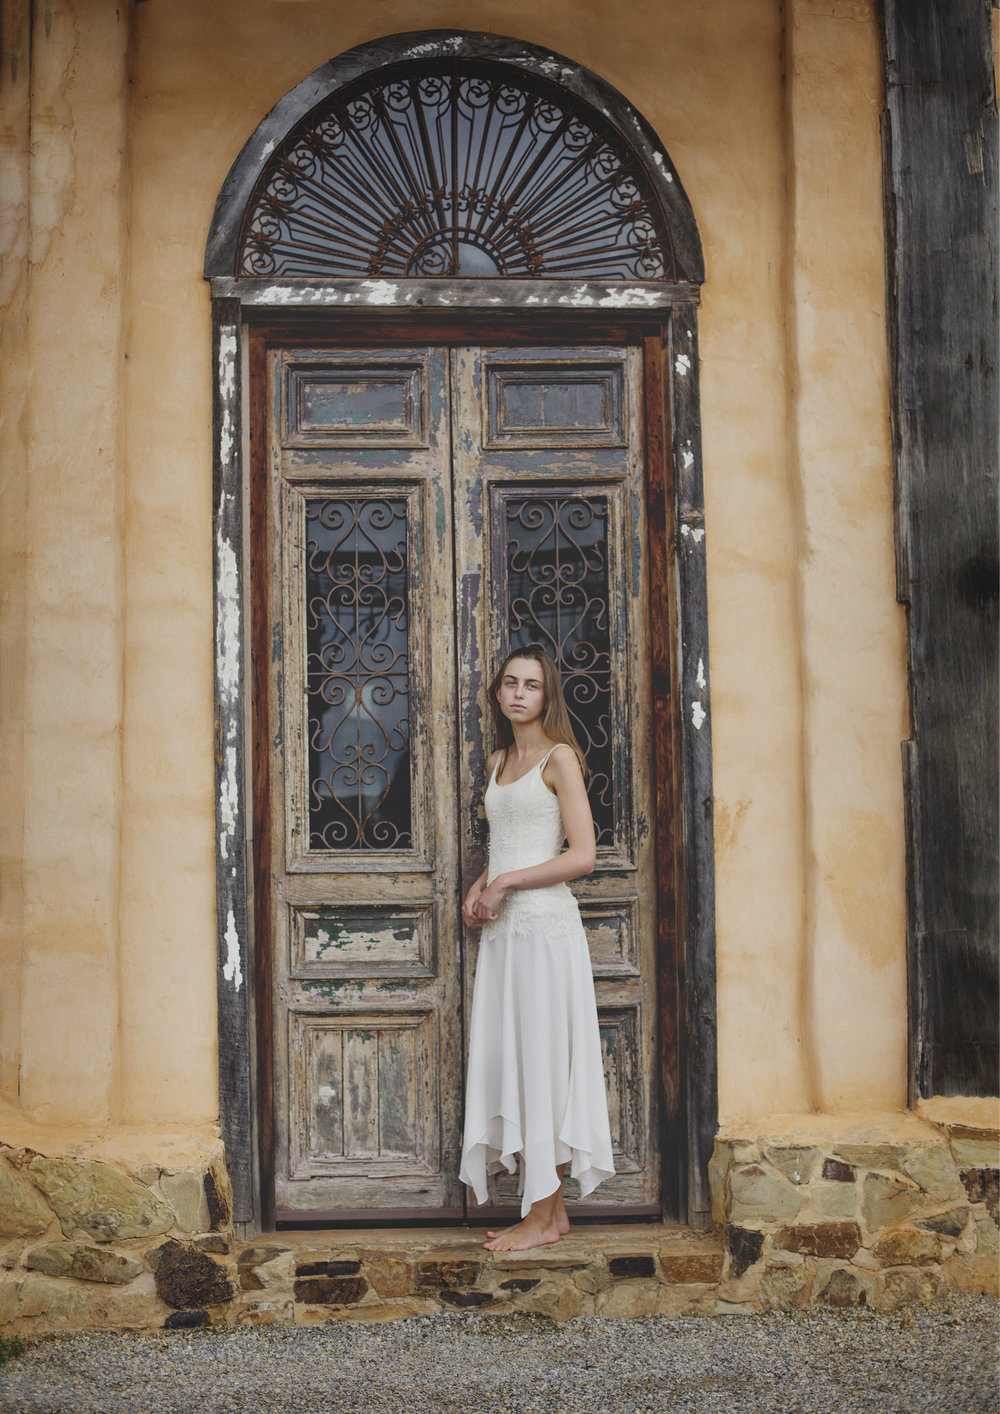 Teenage girl photographed outside against vintage door